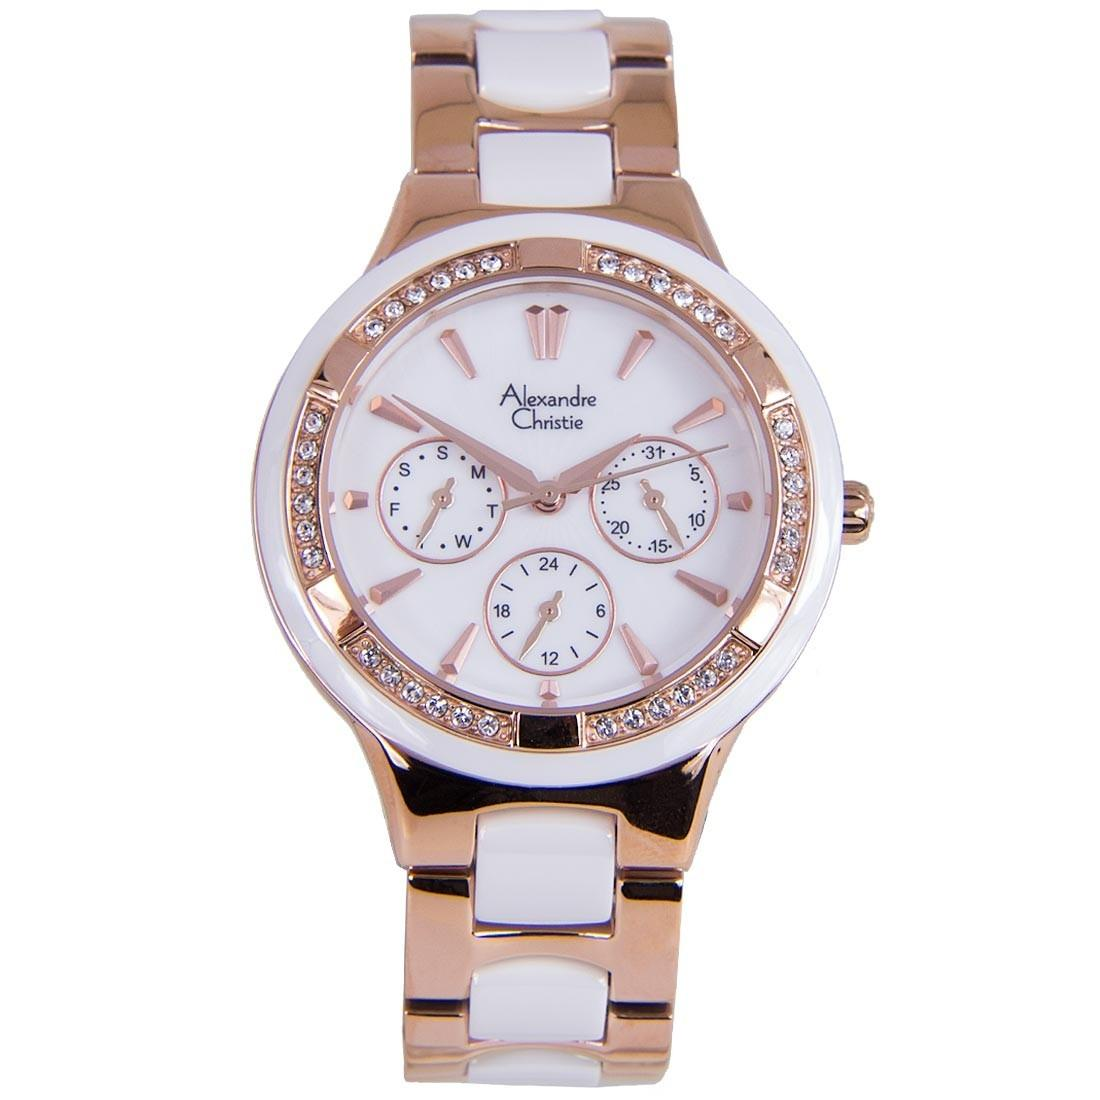 Alexandre Christie Ac 5002 Jam Tangan Pria Kasual Silver Rose 6444 Mc Black Cream Fashion Casual Business